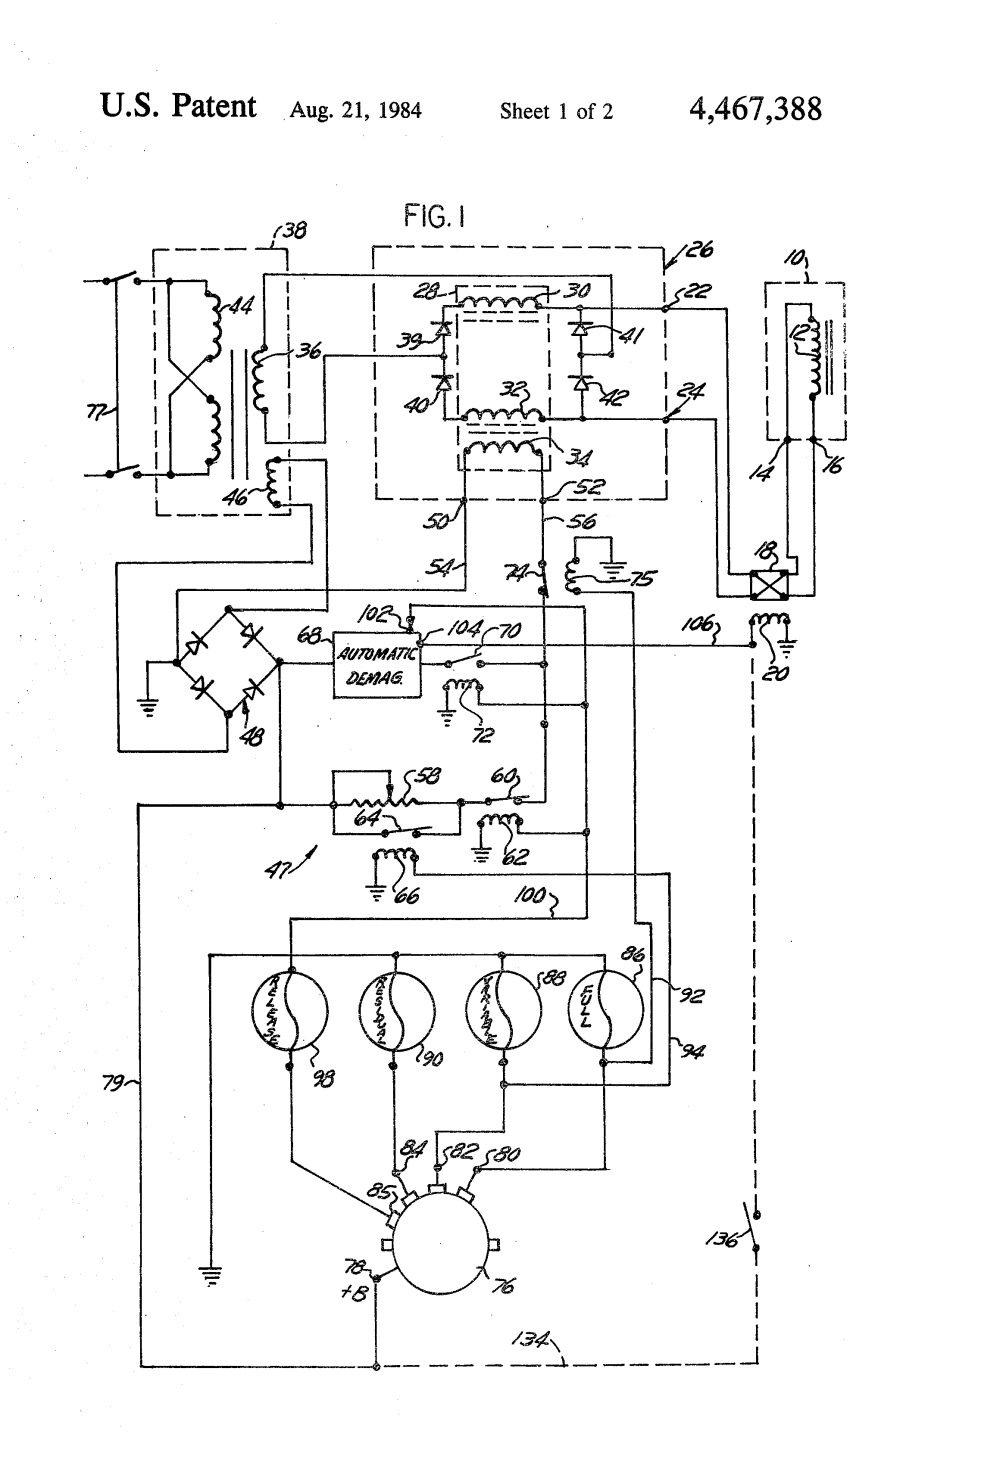 medium resolution of magnetic chuck wiring diagram wiring diagram brevet us4467388 electromagnetic chuck power supply and controllermagnetic chuck wiring